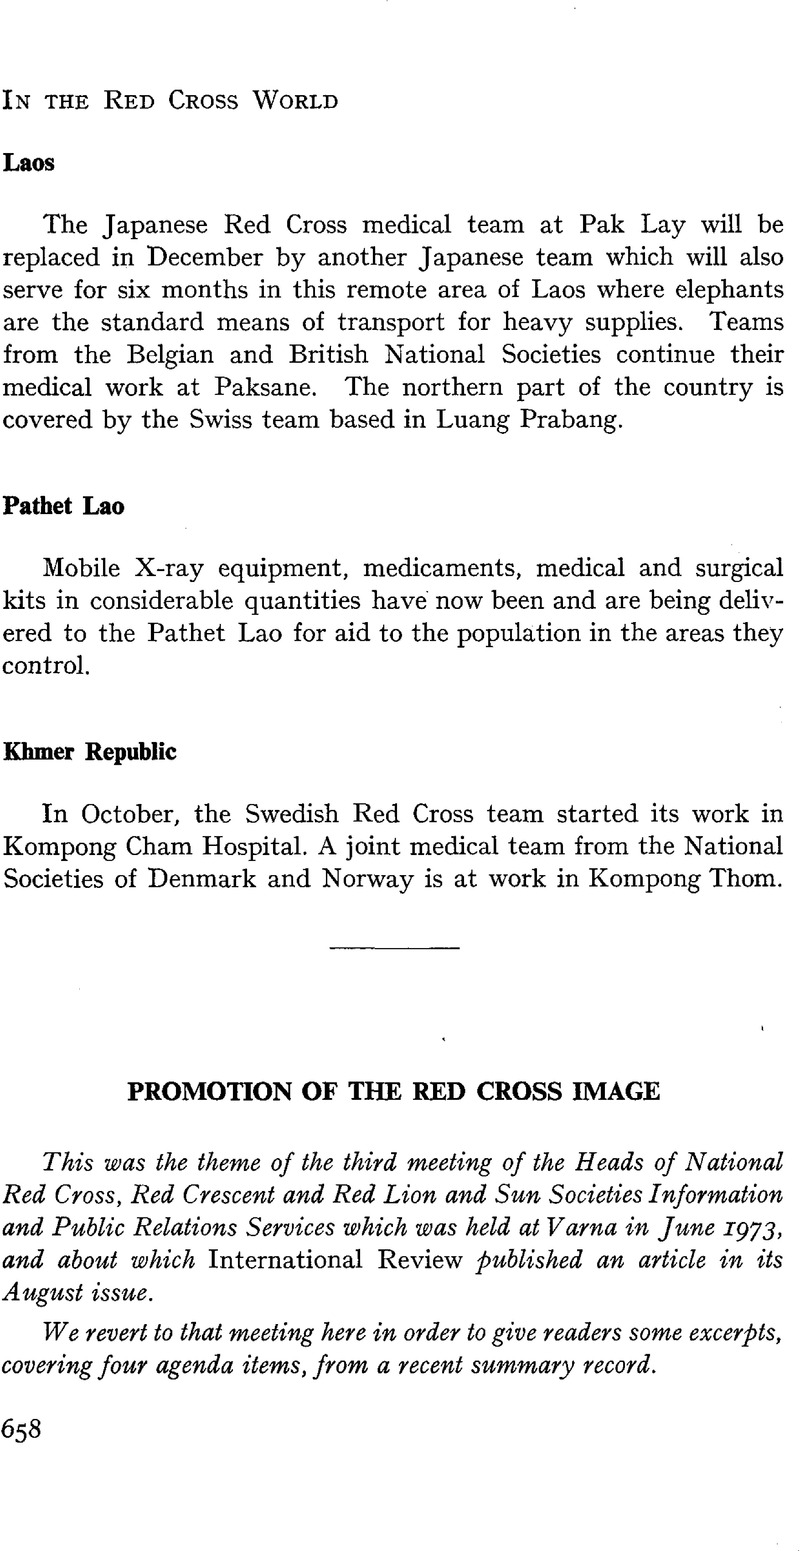 Promotion of the Red Cross Image   International Review of